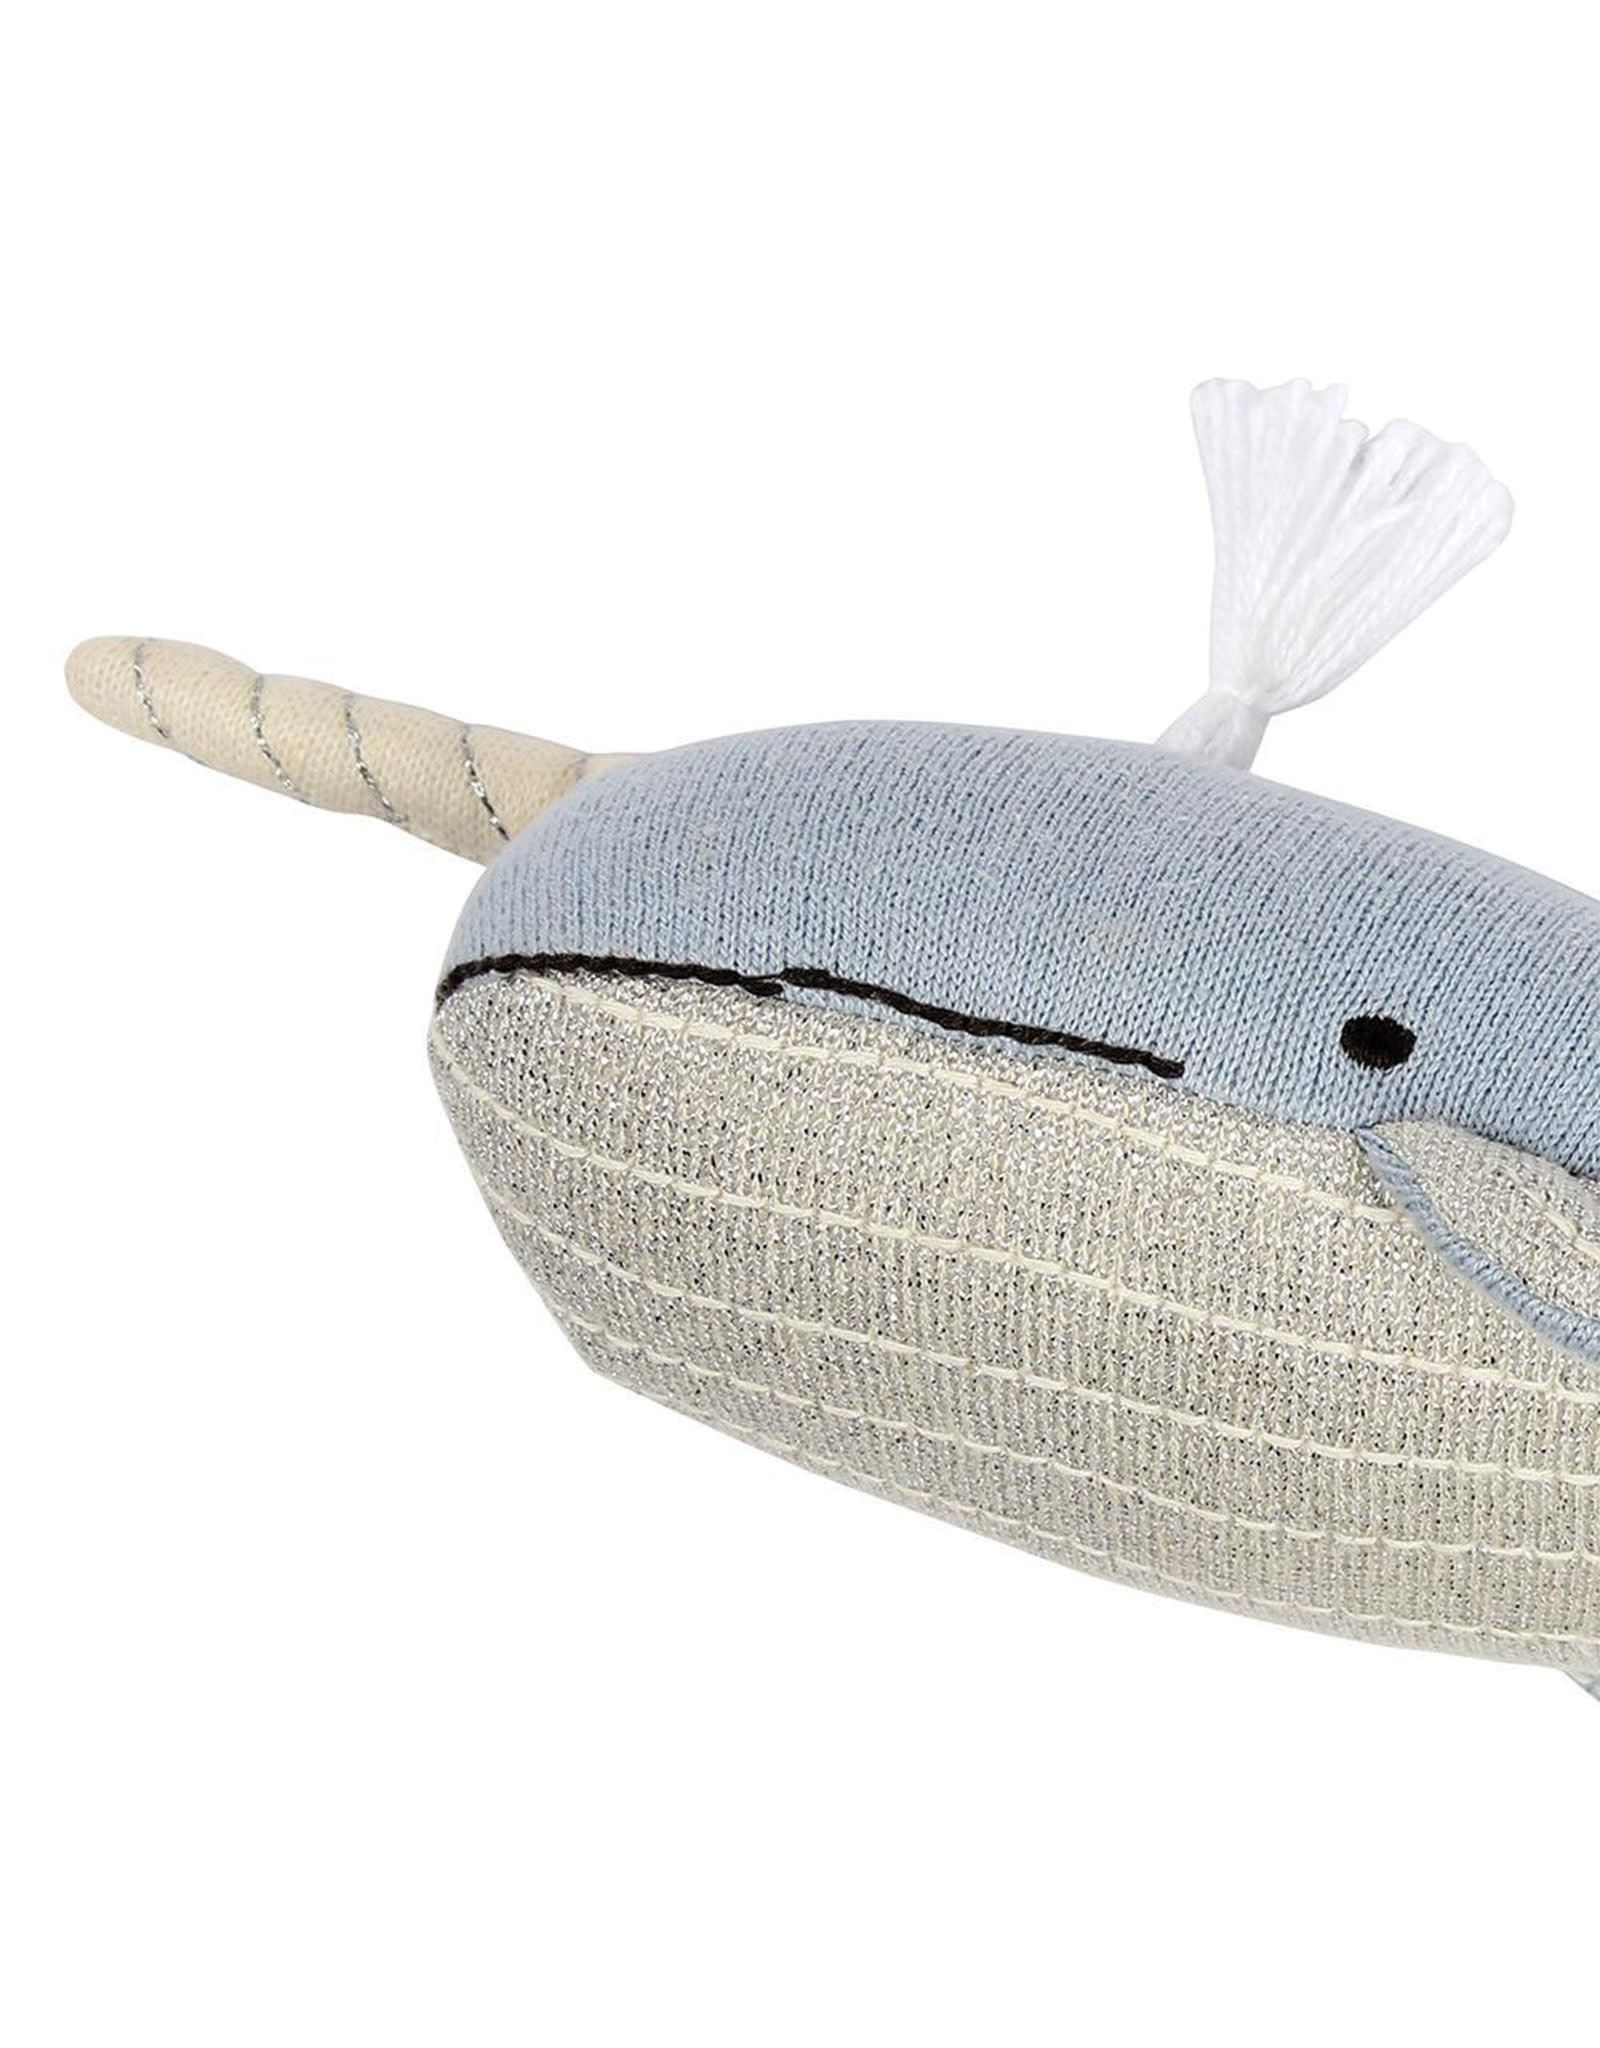 Meri Meri Knitted Toy - Milo The narwhal